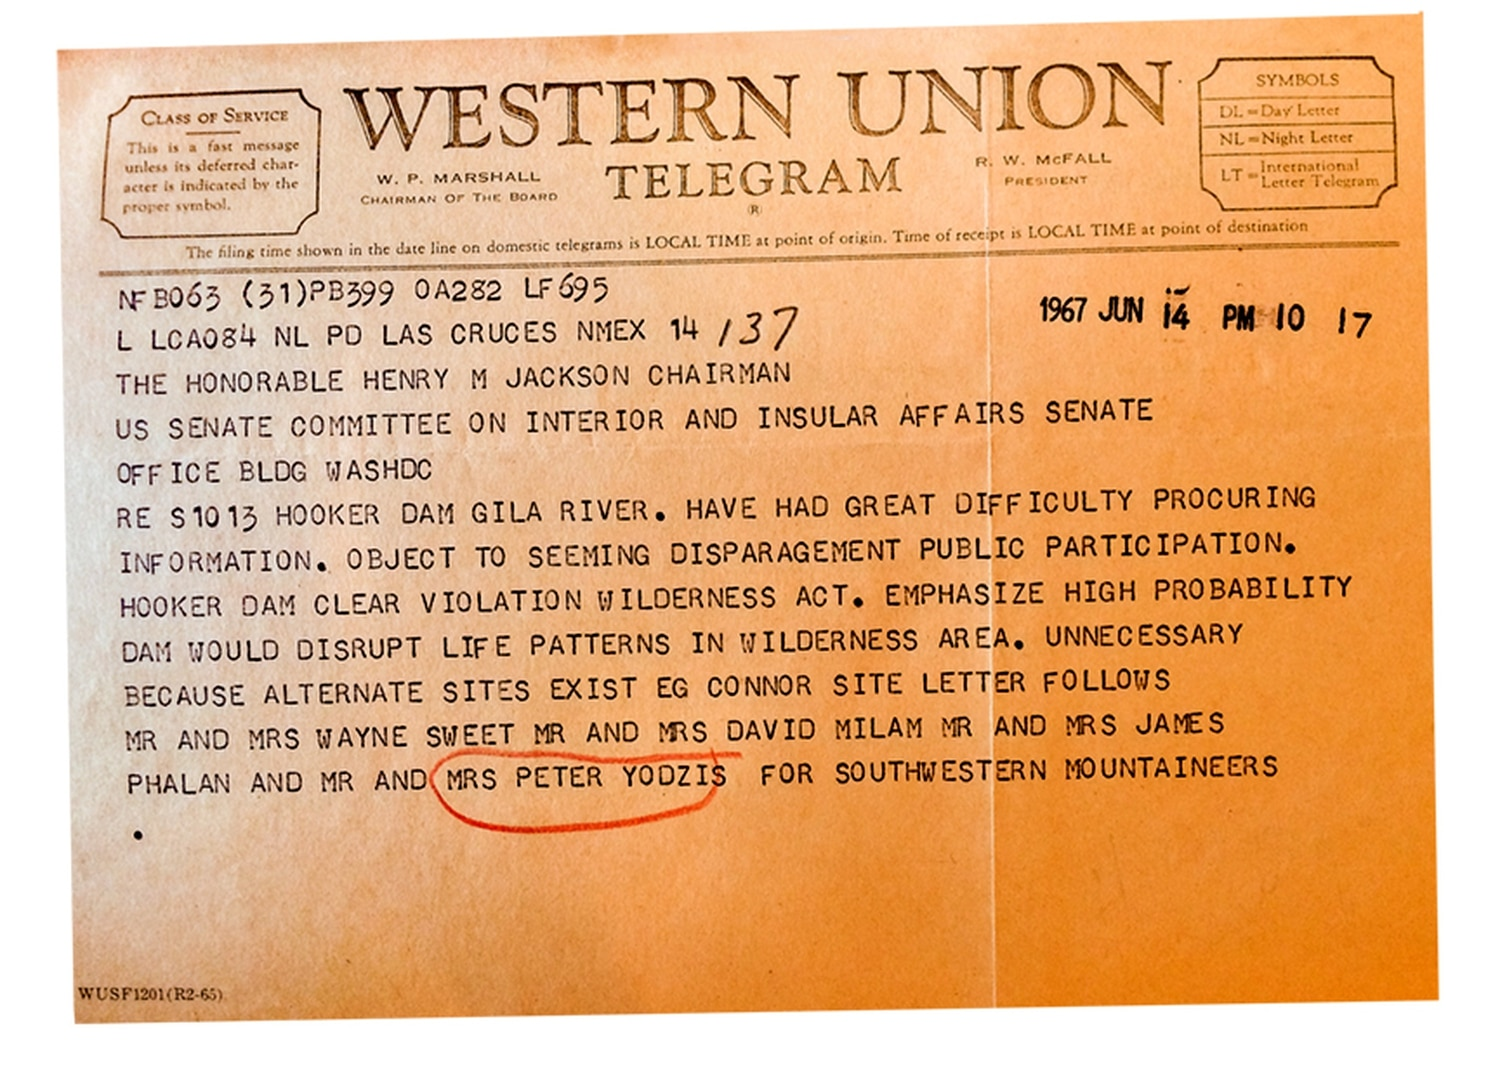 A telegram from a file in the National Archives in Washington DC.